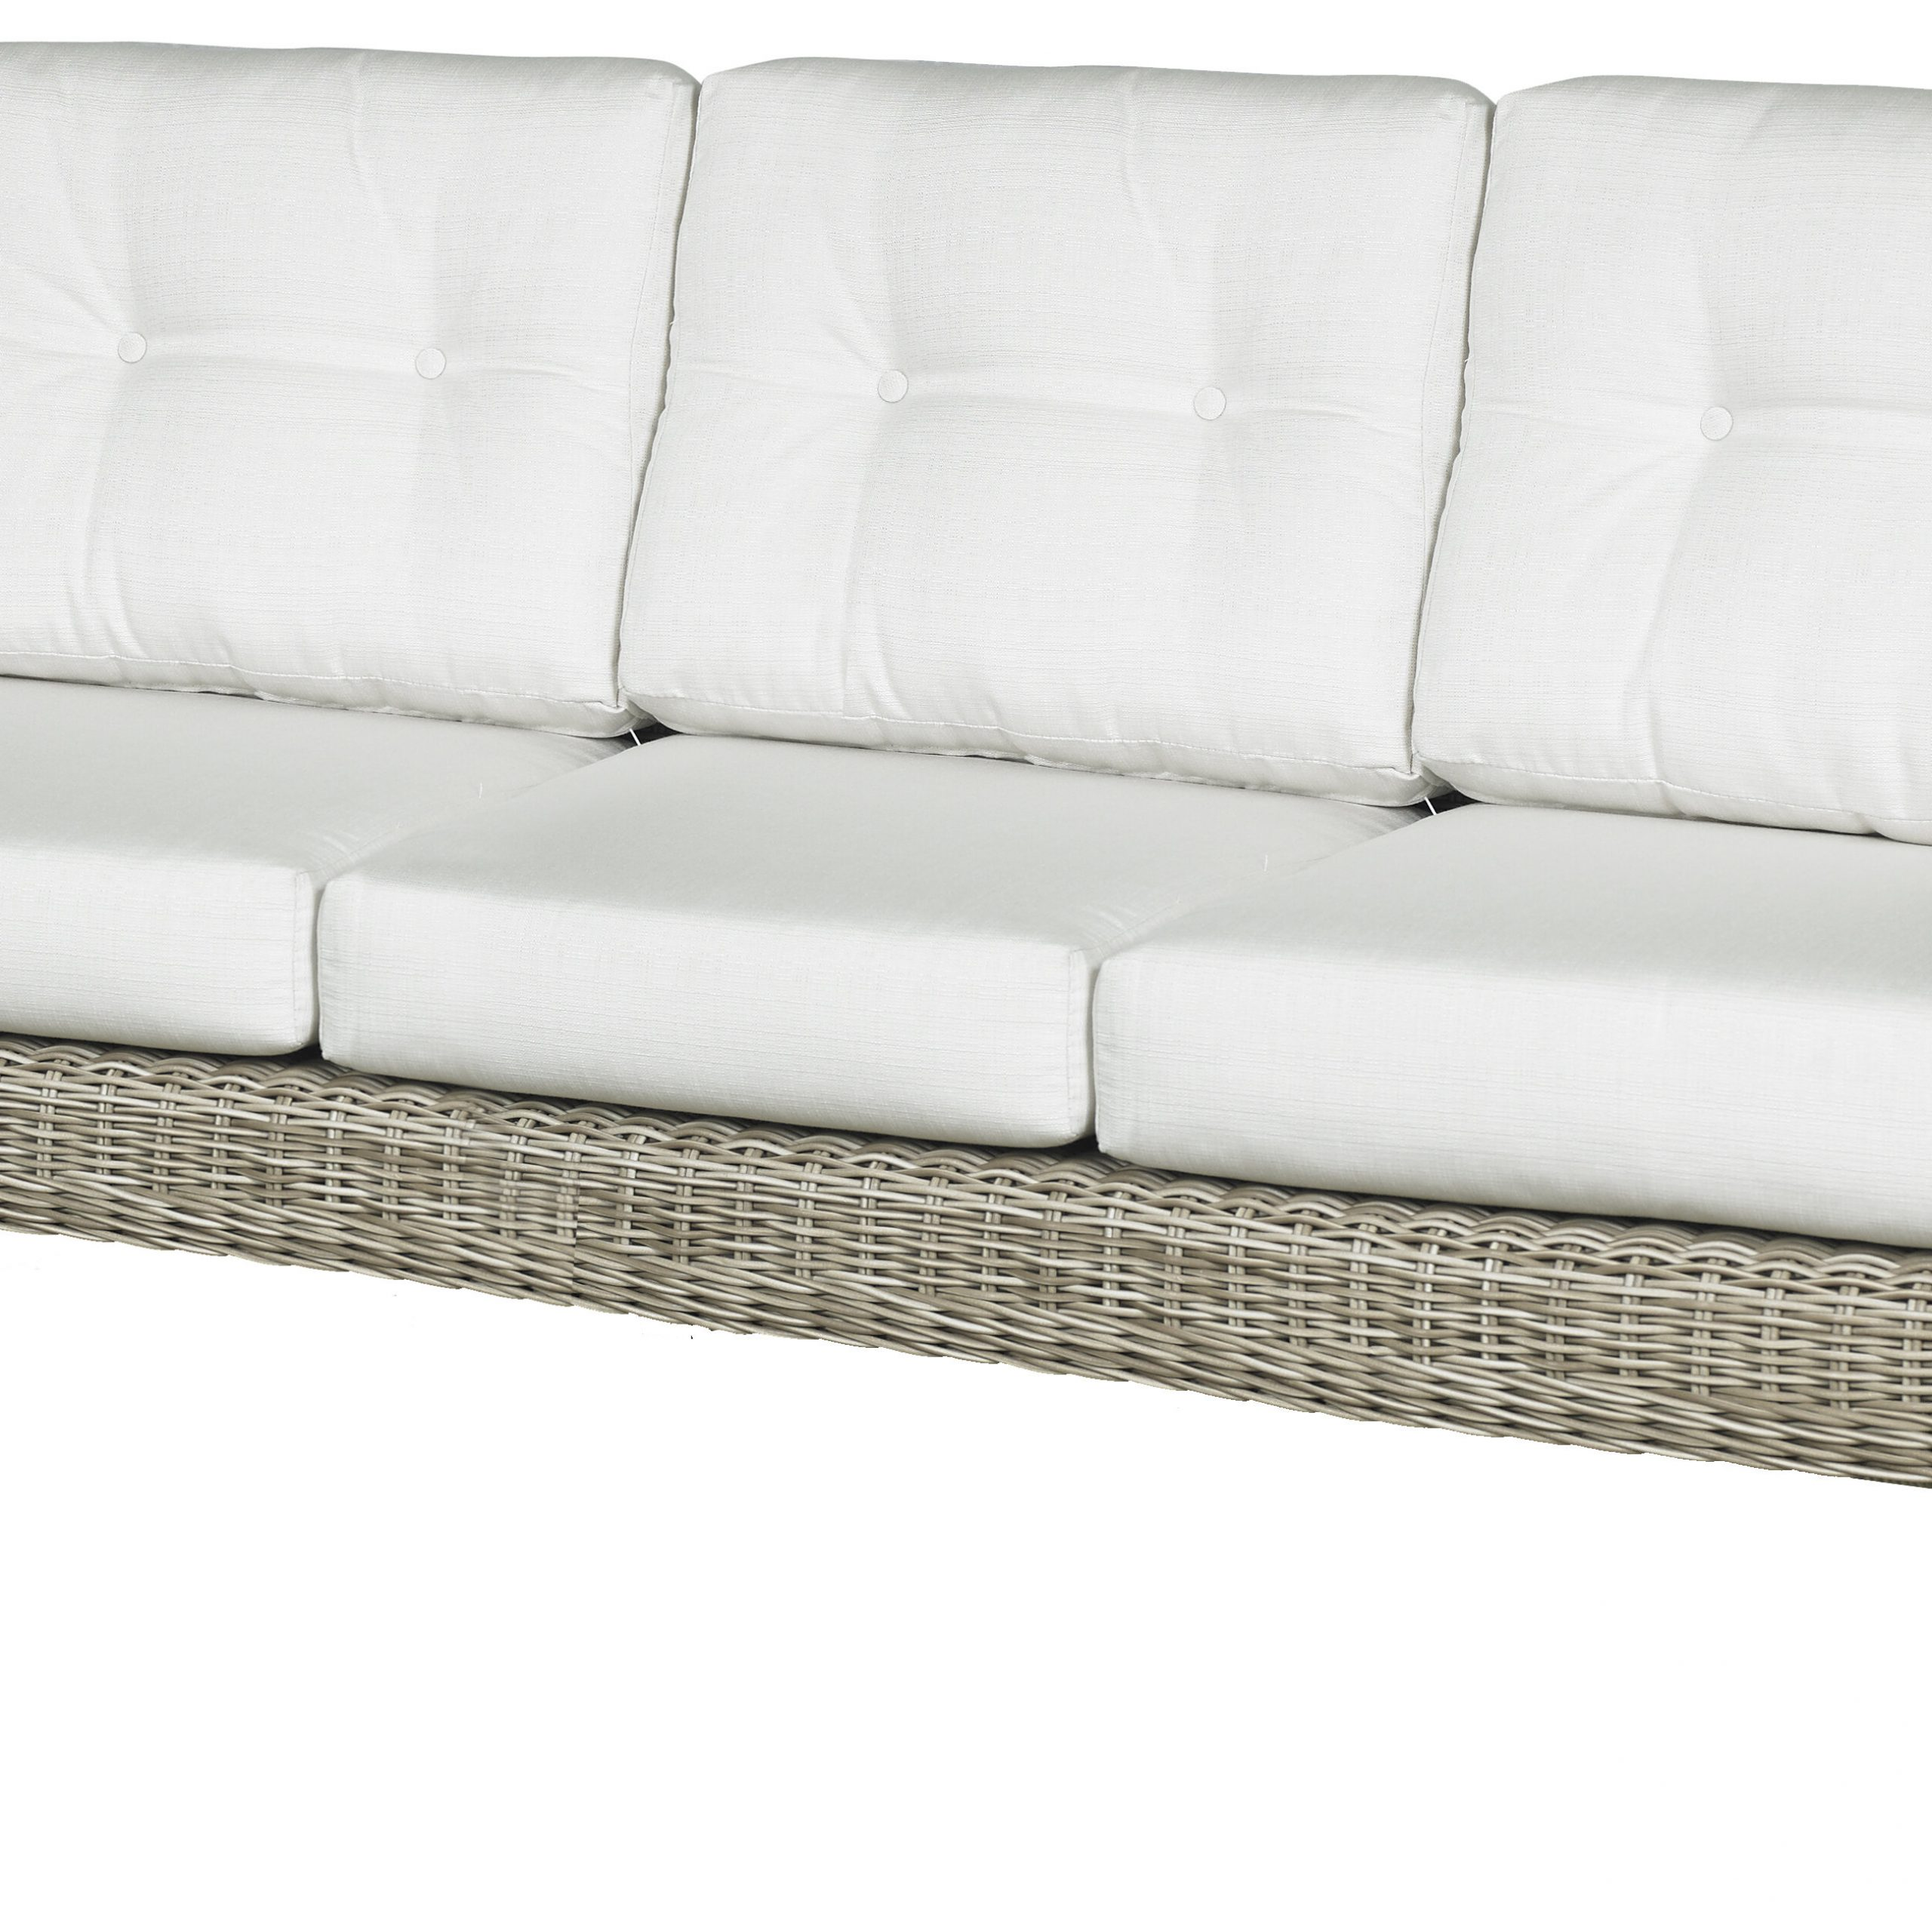 Famous Fannin Patio Sofas With Cushions Within Carlisle Patio Sofa With Cushions (View 6 of 25)